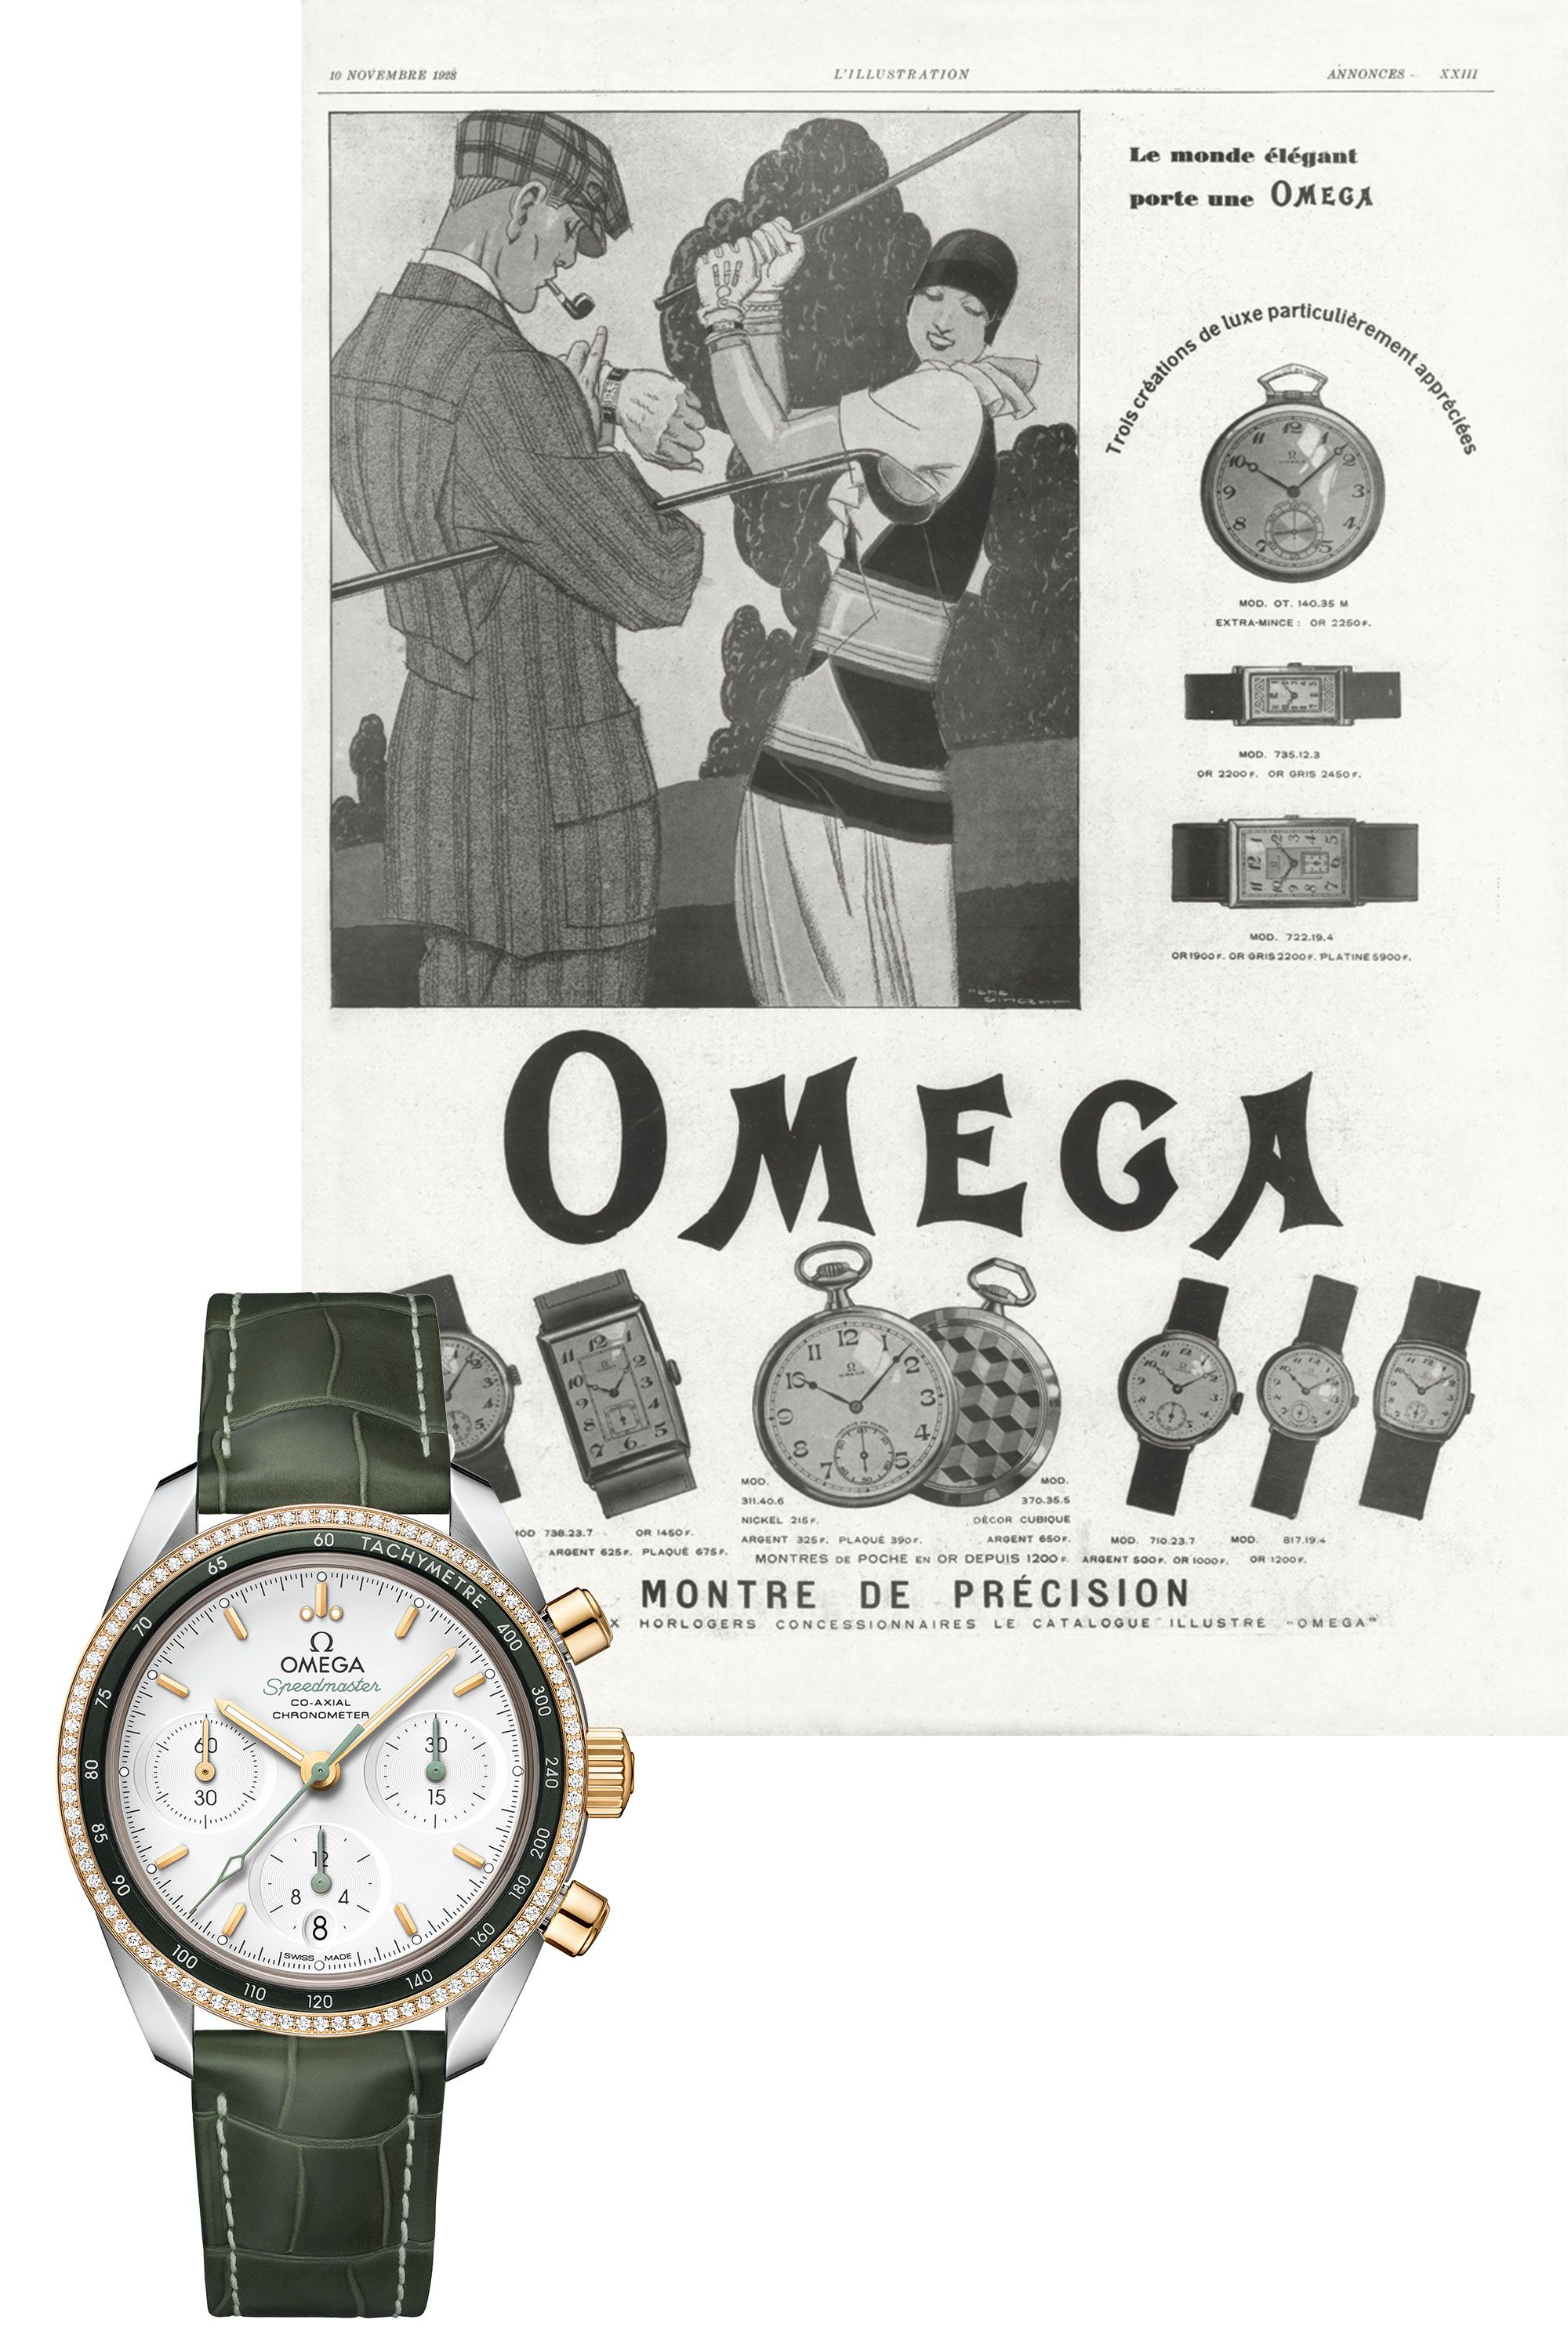 """<p>FromVictorian-era pocket watches to Speedmasters built for walking on the moon, Omega is steeped in history. Its modern mechanical ladies chronograph, made in 18K yellow gold with a green aluminum bezel and a heap of diamonds, is both edgy and everyday wearable. Green is the new neutral, after all.</p><p><em data-redactor-tag=""""em"""" data-verified=""""redactor"""">Speedmaster 38 Co- Axial Chronograph, $9,300;</em><a href=""""https://www.omegawatches.com/watches/speedmaster/speedmaster-38mm/co-axial-chronograph-38-mm/32428385002001/"""" target=""""_blank"""" data-tracking-id=""""recirc-text-link""""><em data-redactor-tag=""""em"""" data-verified=""""redactor"""">omega.com</em></a></p>"""